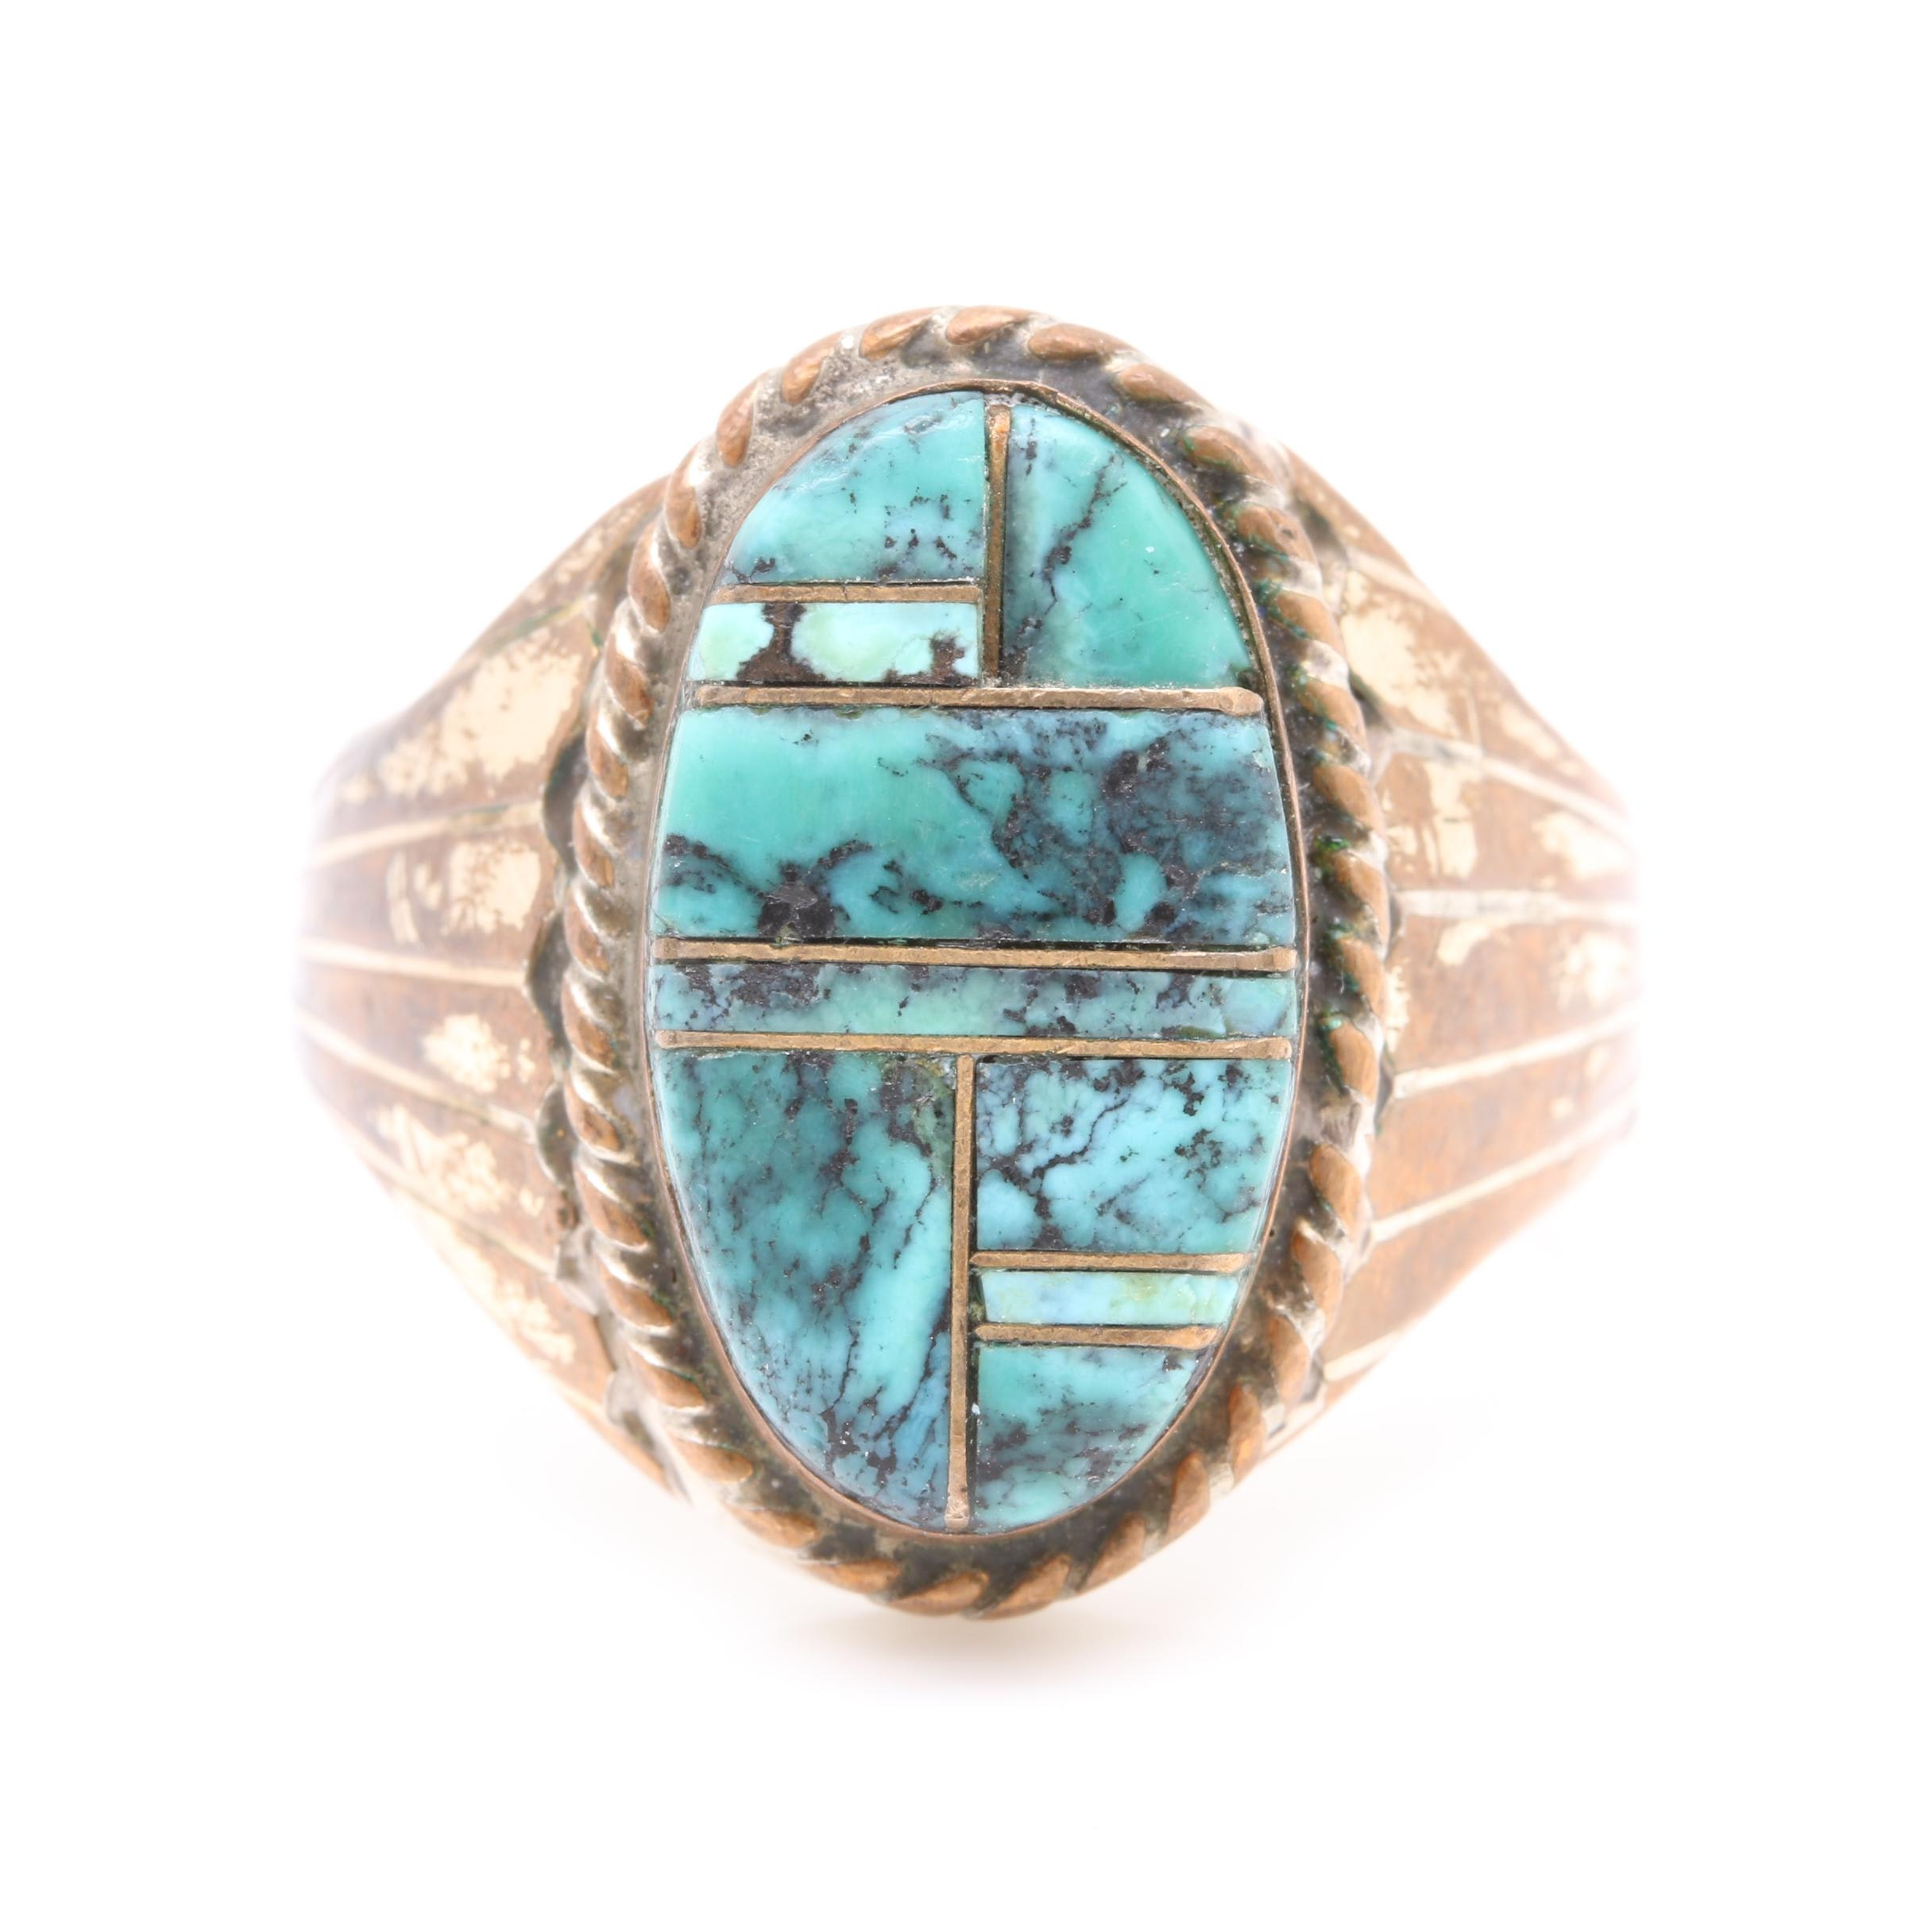 Tommy Jackson Navajo Diné Sterling Silver Turquoise Inlay Ring